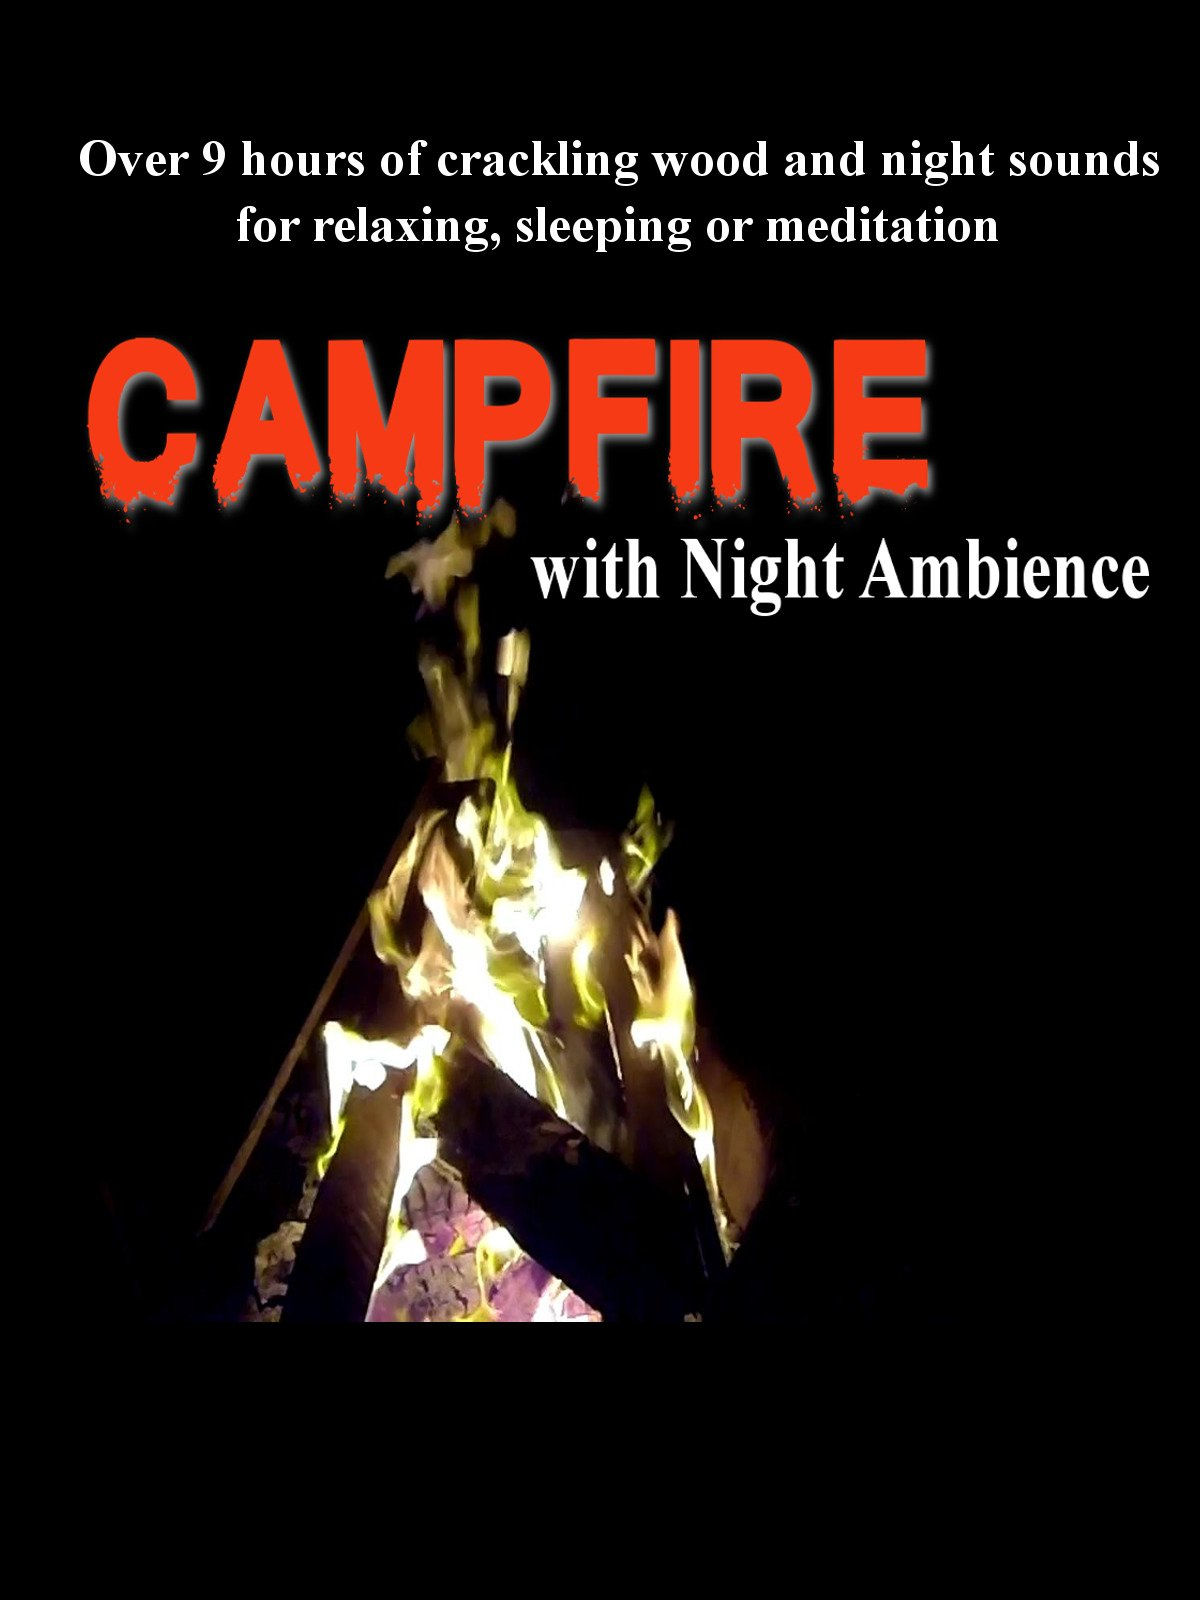 Campfire with night ambience